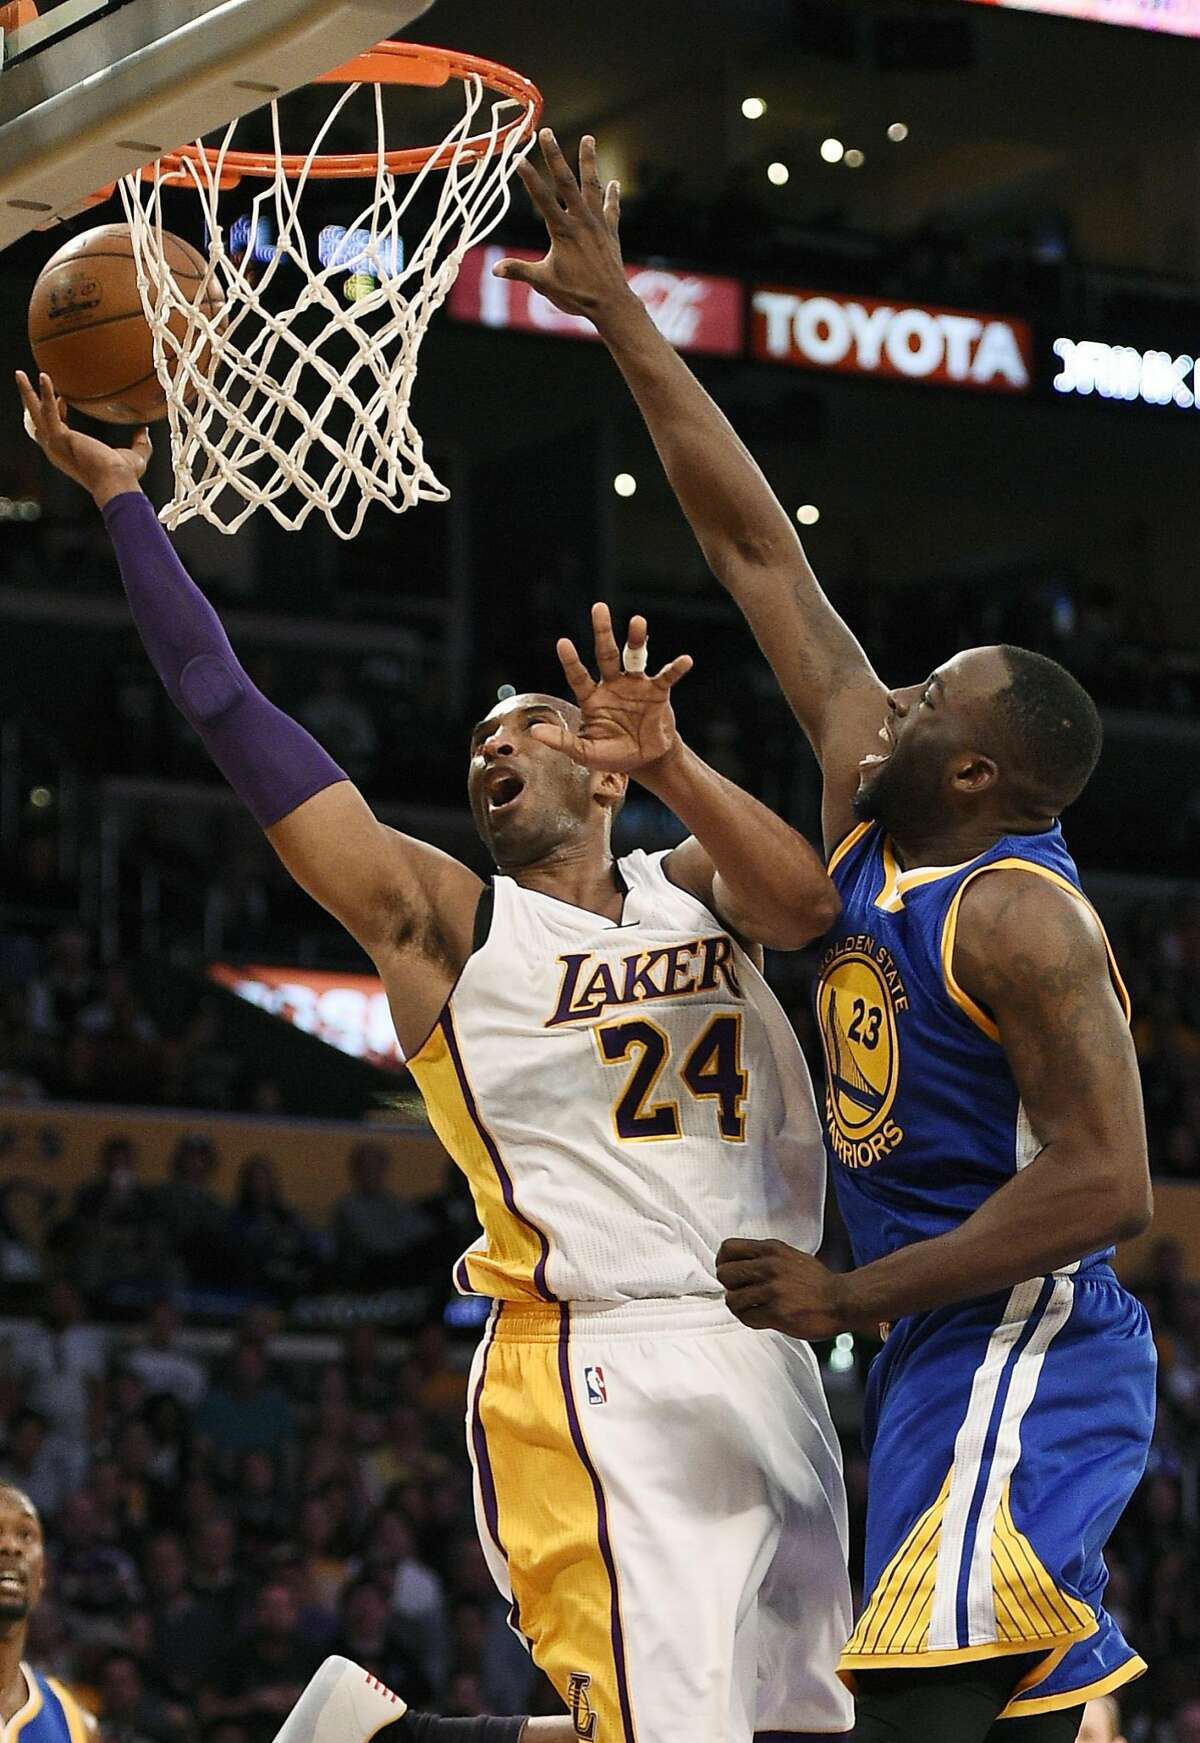 Los Angeles Lakers forward Kobe Bryant, left, attempts a shot while Golden State Warriors forward Draymond Green, right, defends during the first half of an NBA basketball game in Los Angeles, Sunday, March 6, 2016.